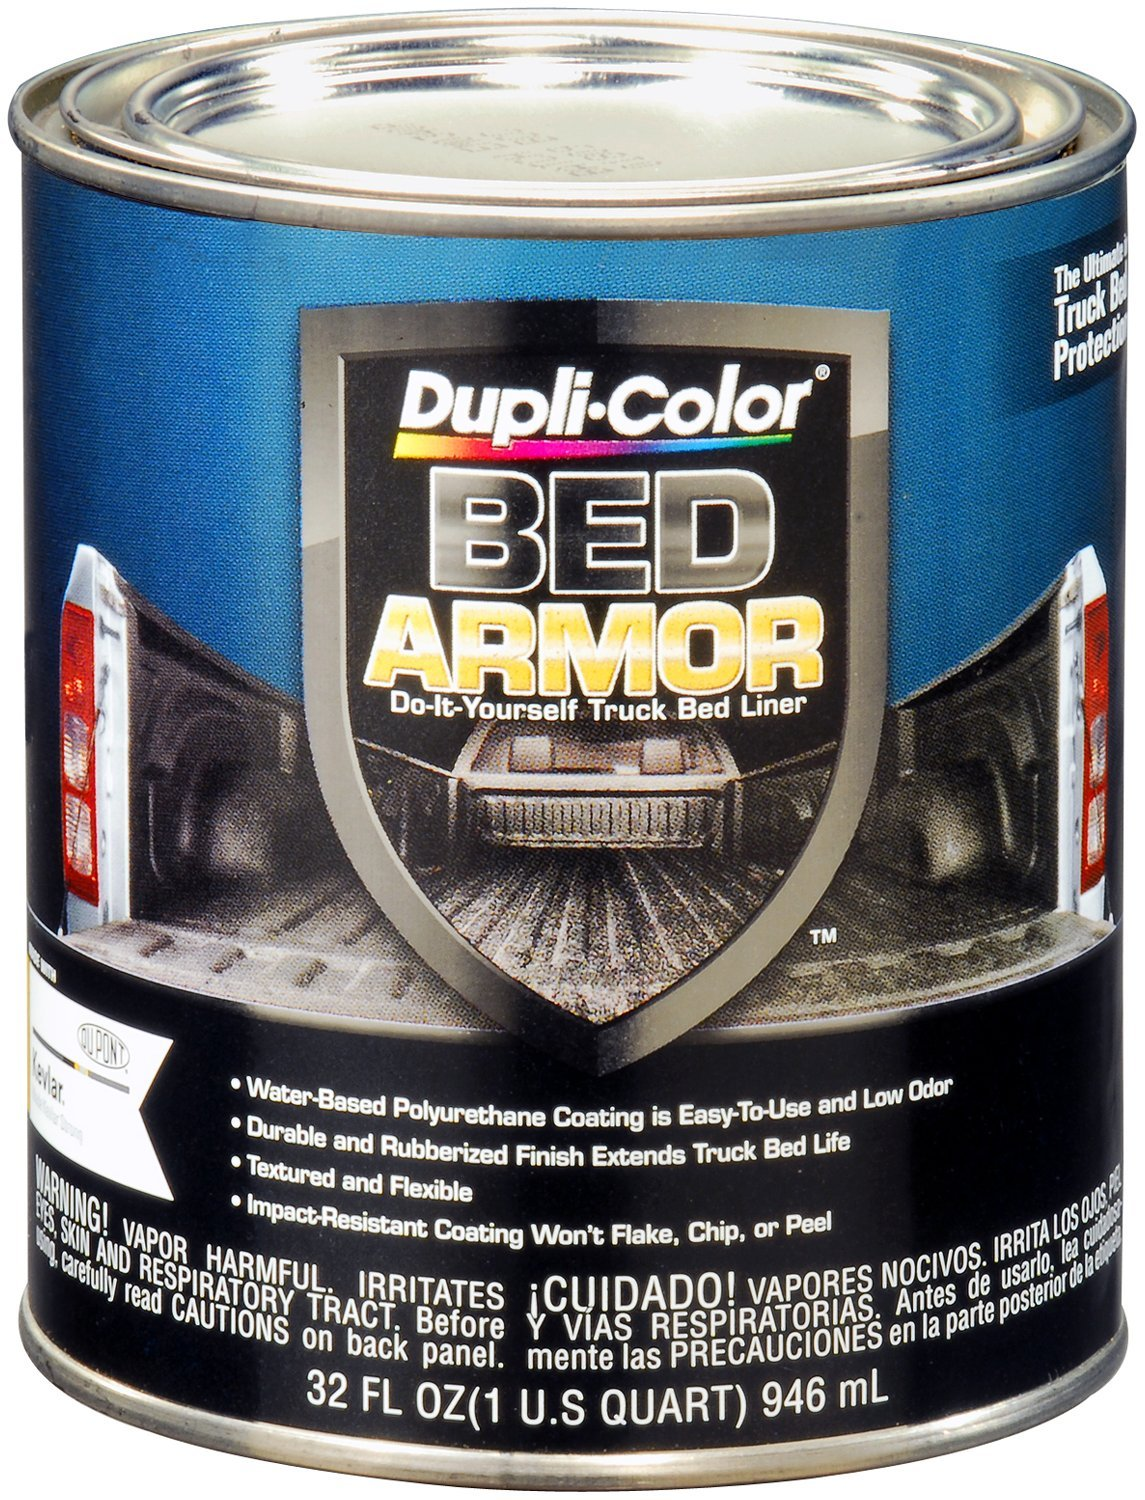 Dupli-Color Black Premium Truck Bed Armor by Dupli-Color (Image #1)